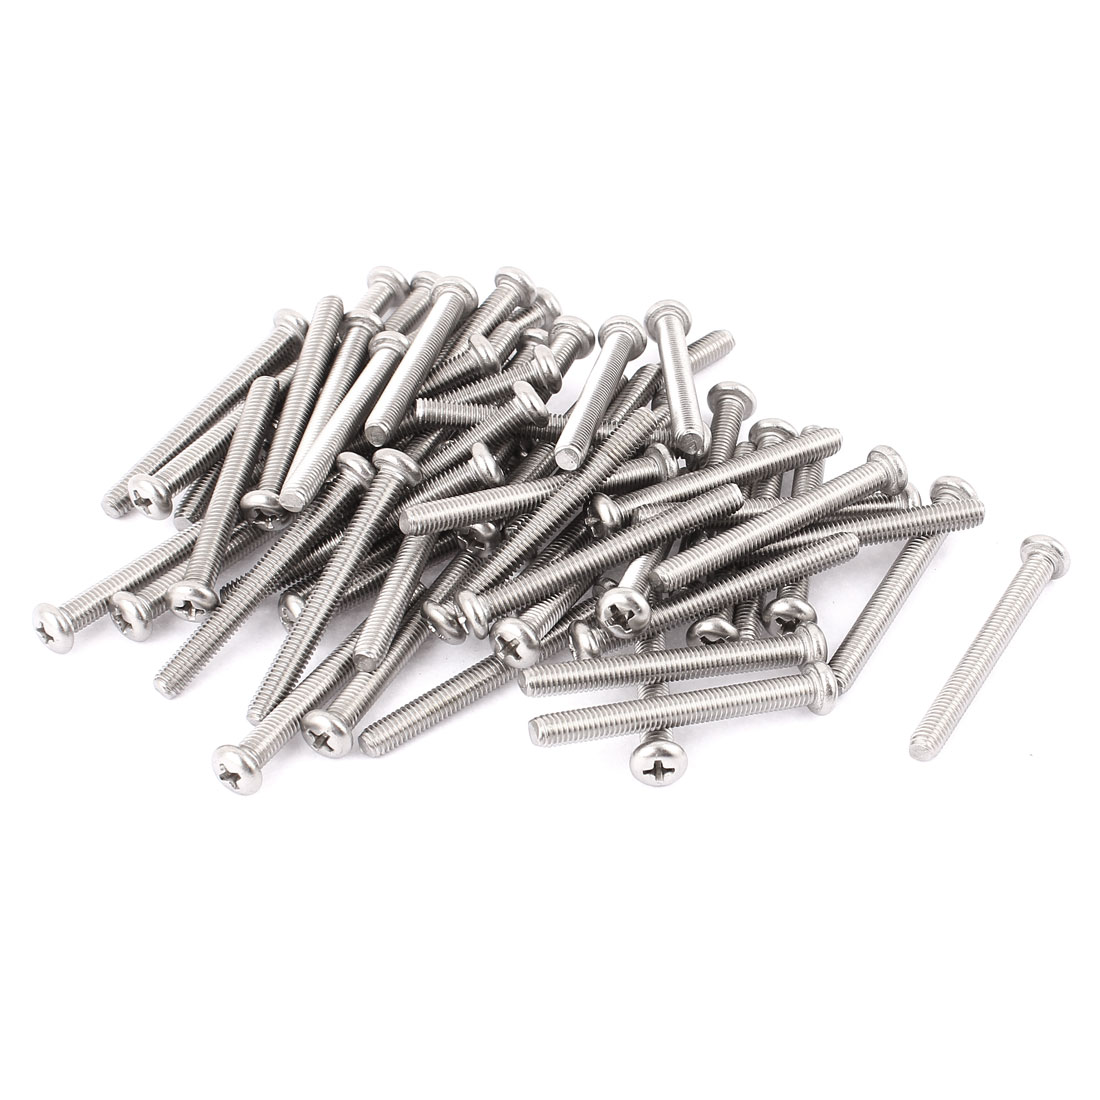 M5 x 45mm 304 Stainless Steel Crosshead Phillips Pan Head Screws Bolt 60pcs